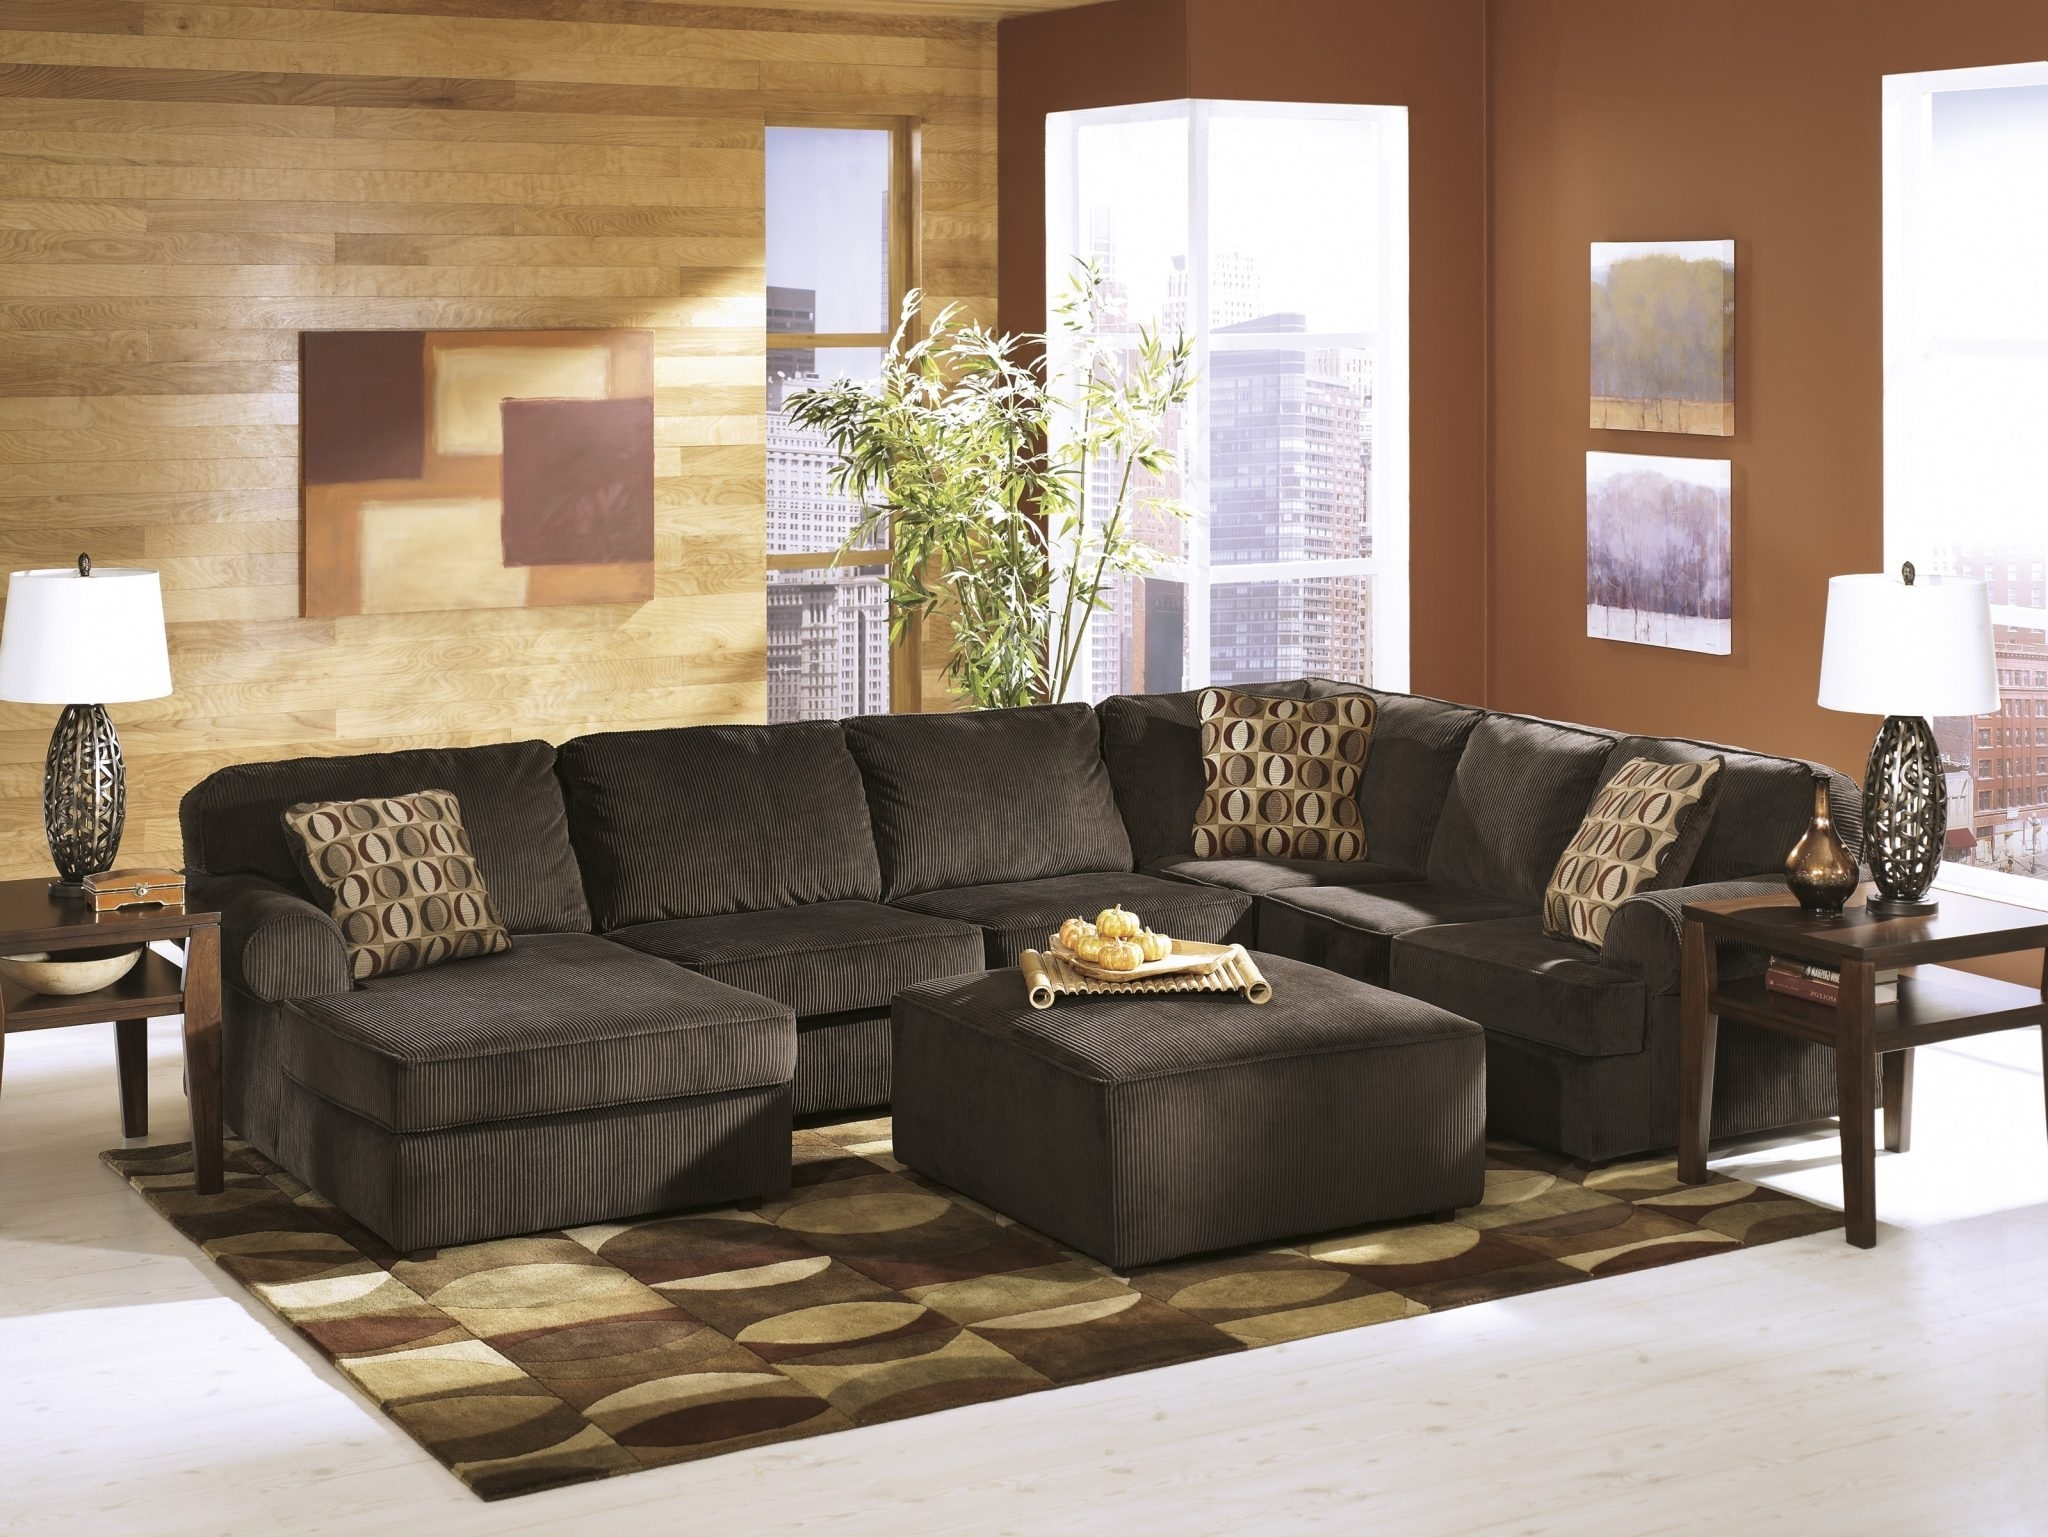 Ashley 684 Vista Sectional | Best Furniture Mentor Oh: Furniture pertaining to Cosmos Grey 2 Piece Sectionals With Raf Chaise (Image 2 of 30)